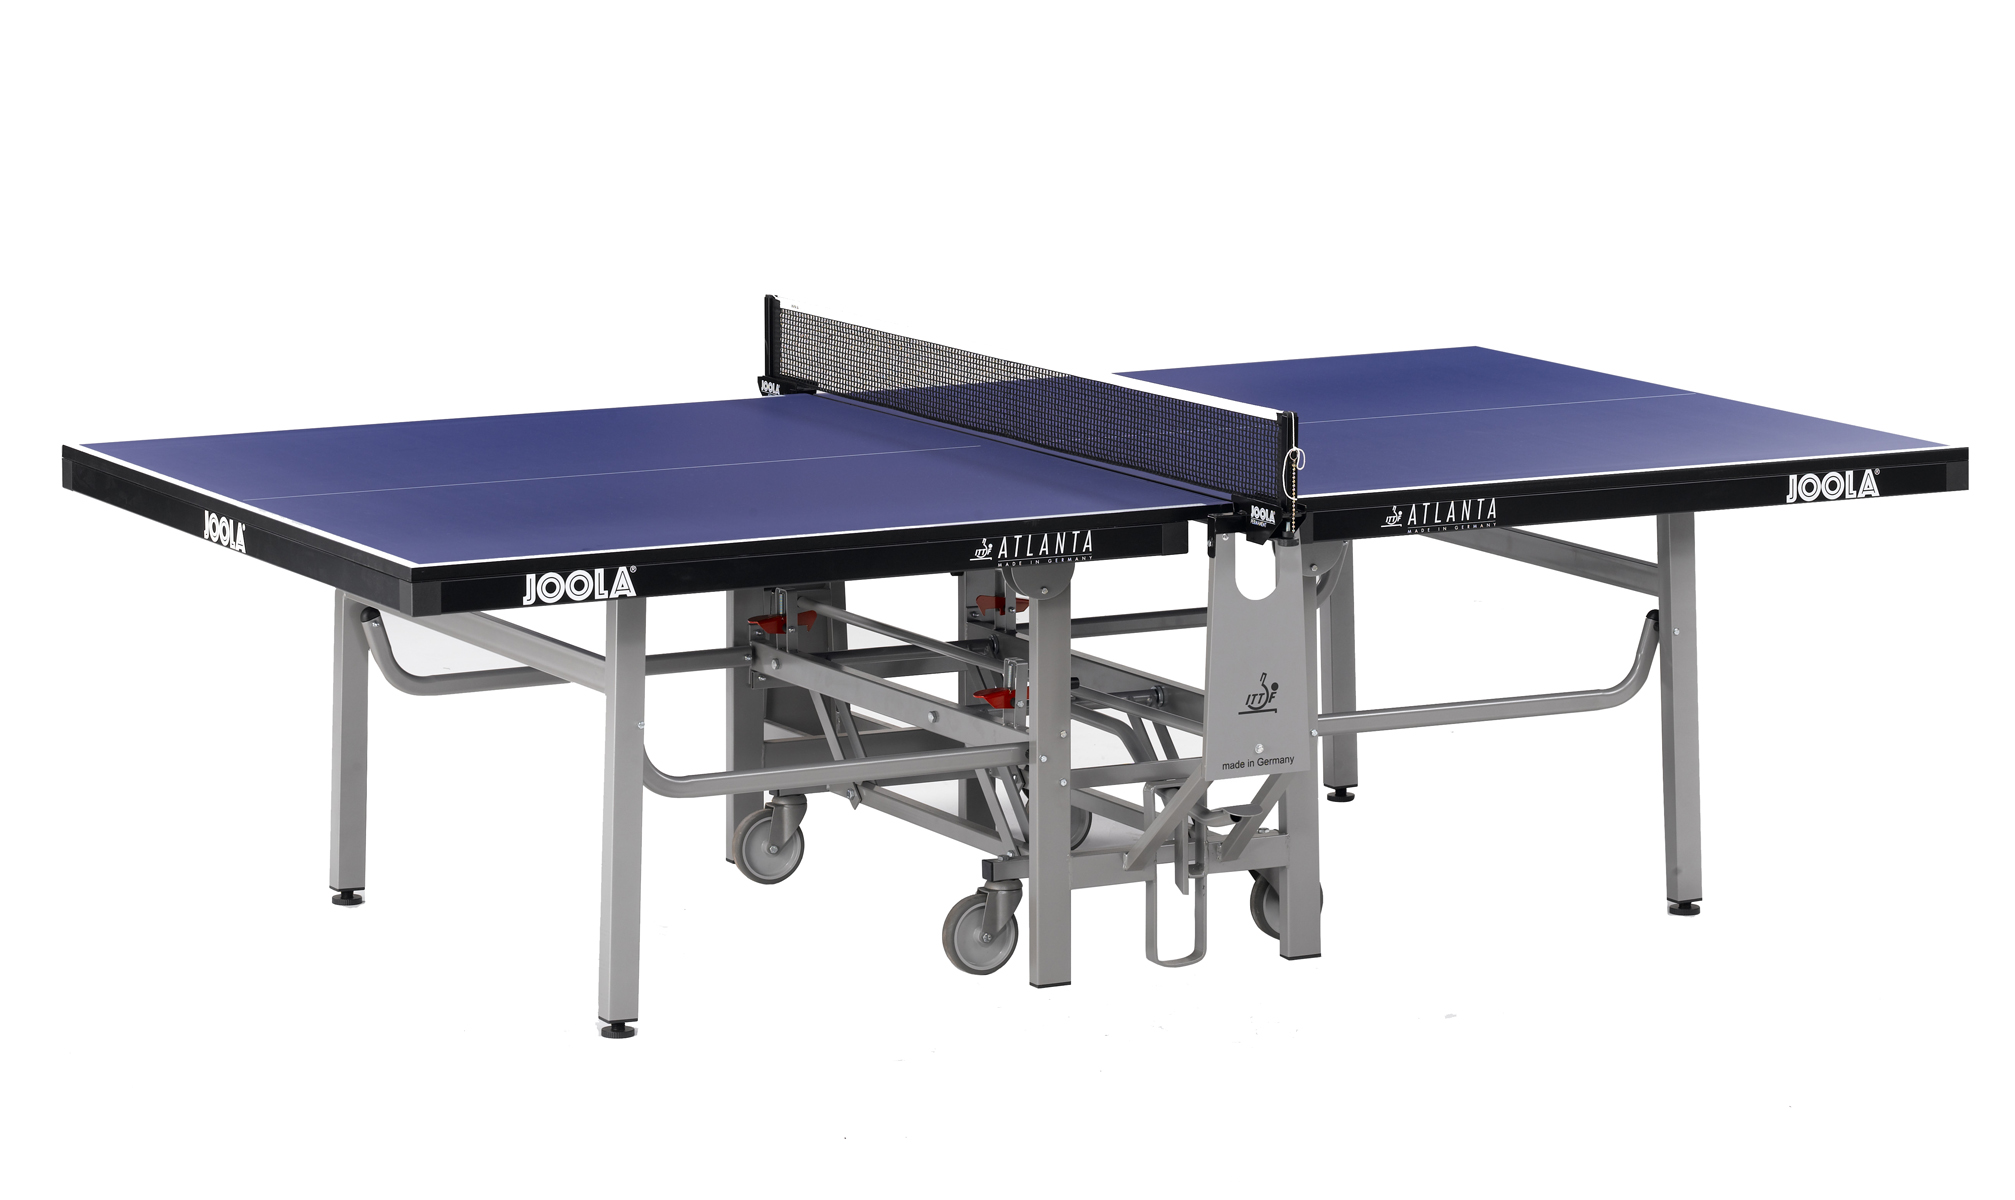 Joola Atlanta Tournament Table Tennis Table